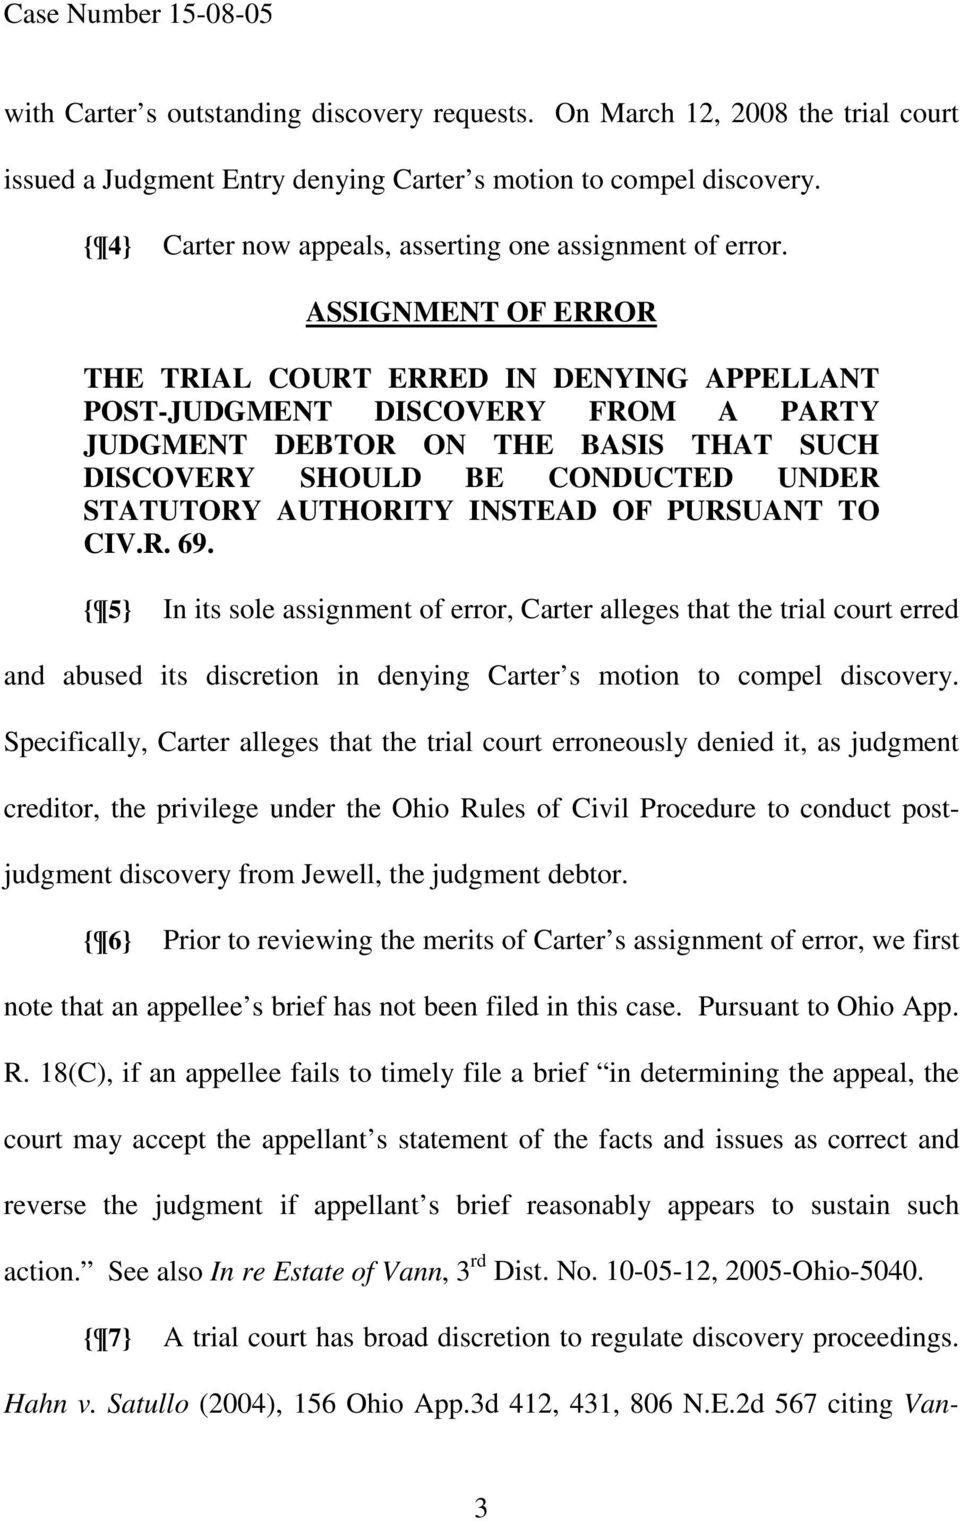 ASSIGNMENT OF ERROR THE TRIAL COURT ERRED IN DENYING APPELLANT POST-JUDGMENT DISCOVERY FROM A PARTY JUDGMENT DEBTOR ON THE BASIS THAT SUCH DISCOVERY SHOULD BE CONDUCTED UNDER STATUTORY AUTHORITY